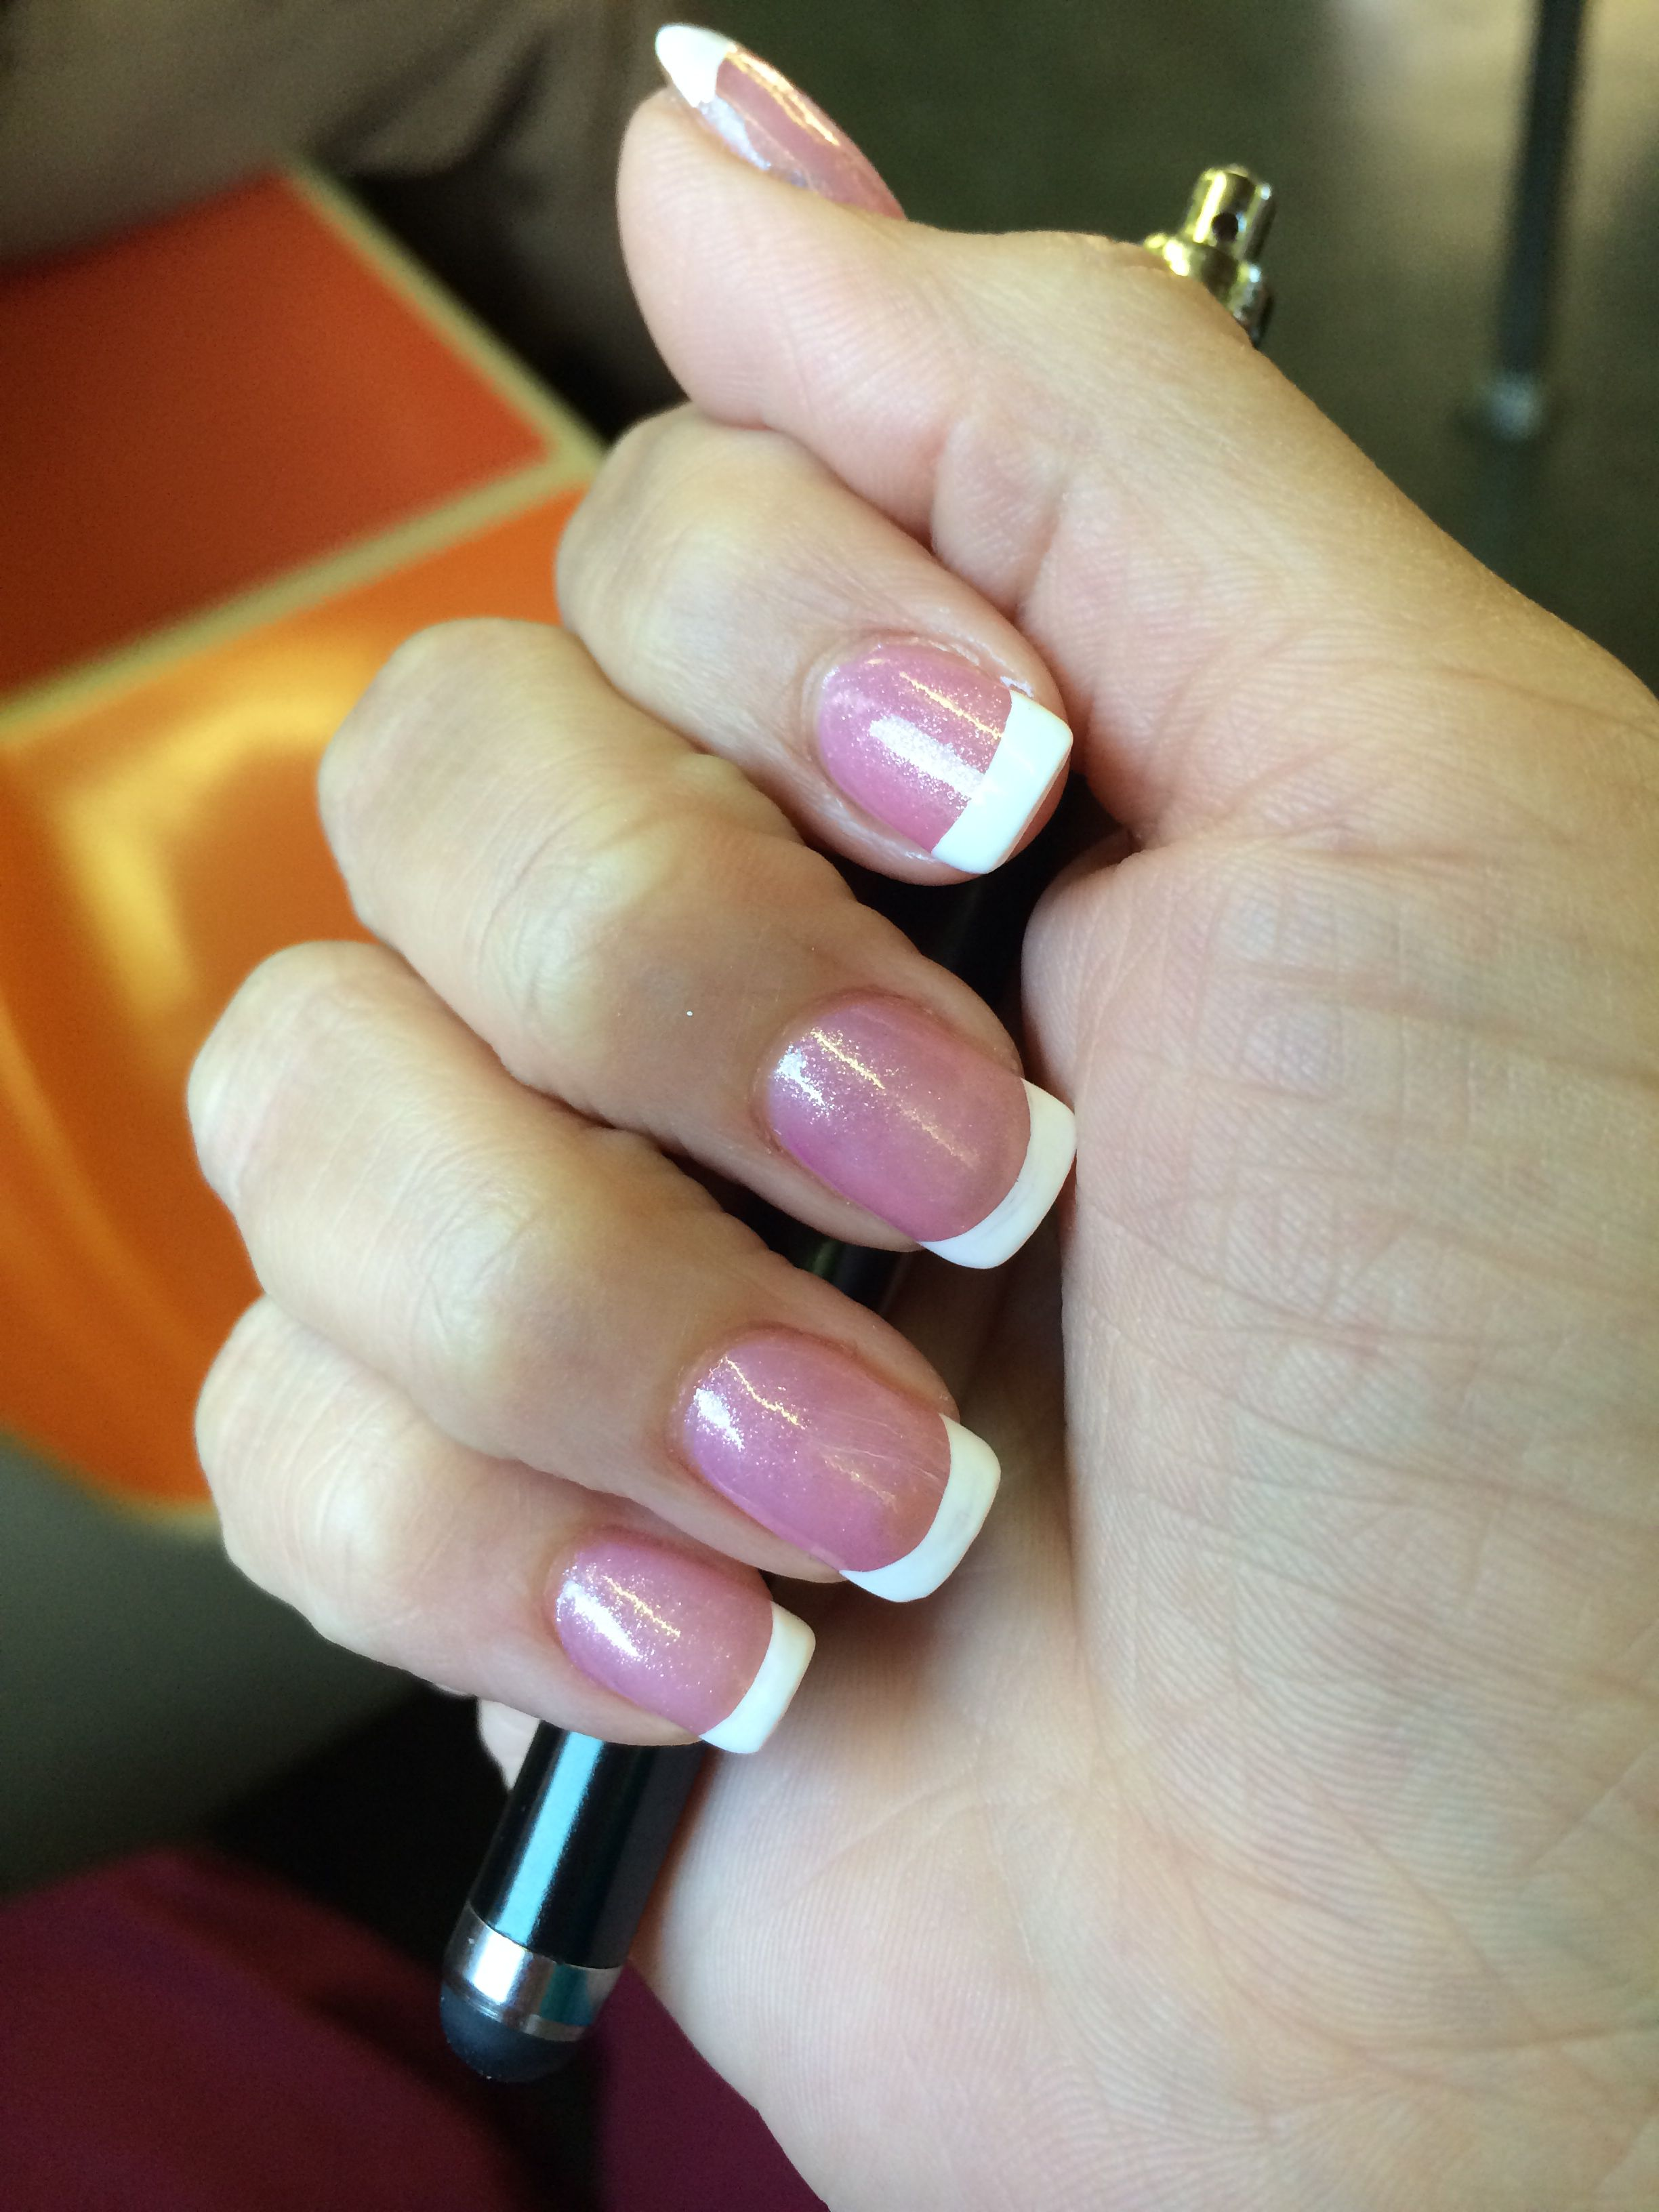 My Nails Done Today Ps Those Are Not Enhancements They R Natural With Silk